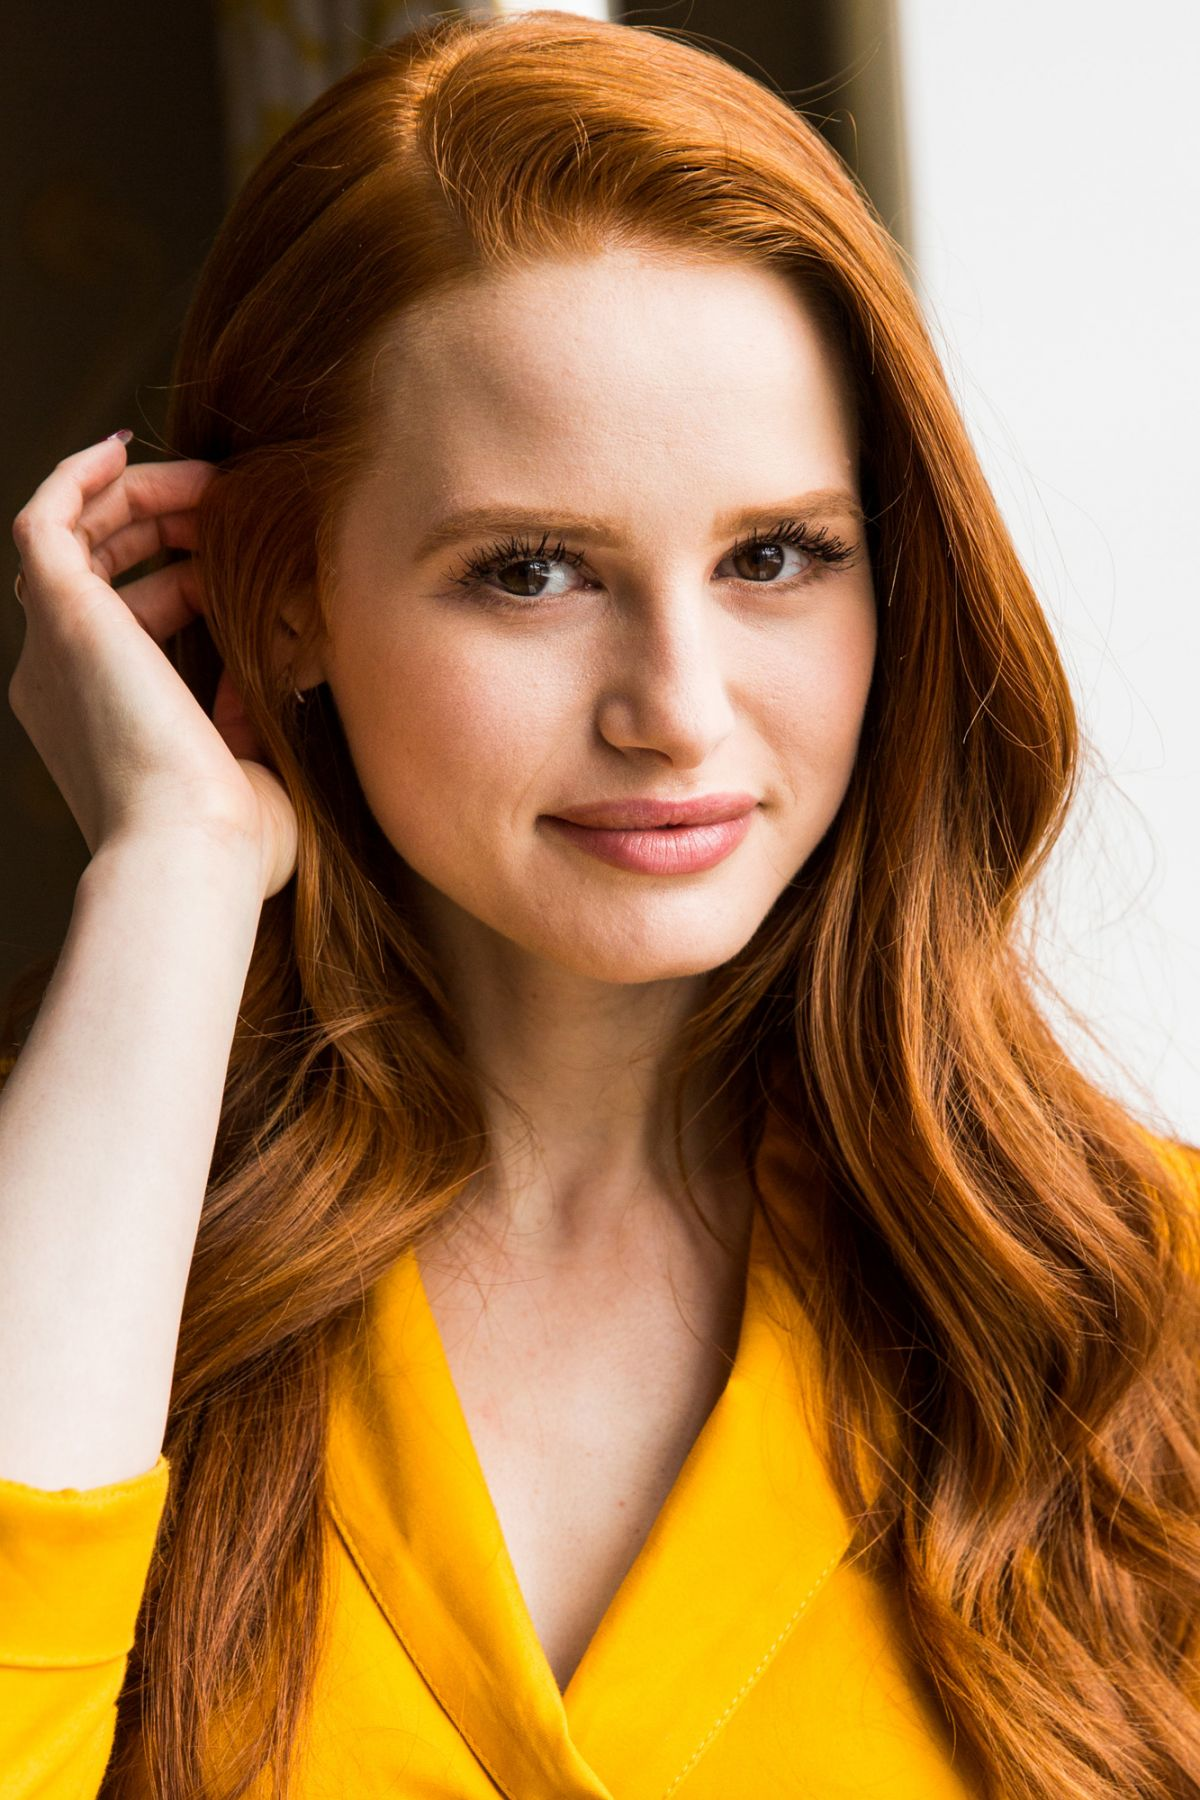 Madelaine Petsch nudes (88 photos), Topless, Sideboobs, Twitter, cleavage 2020